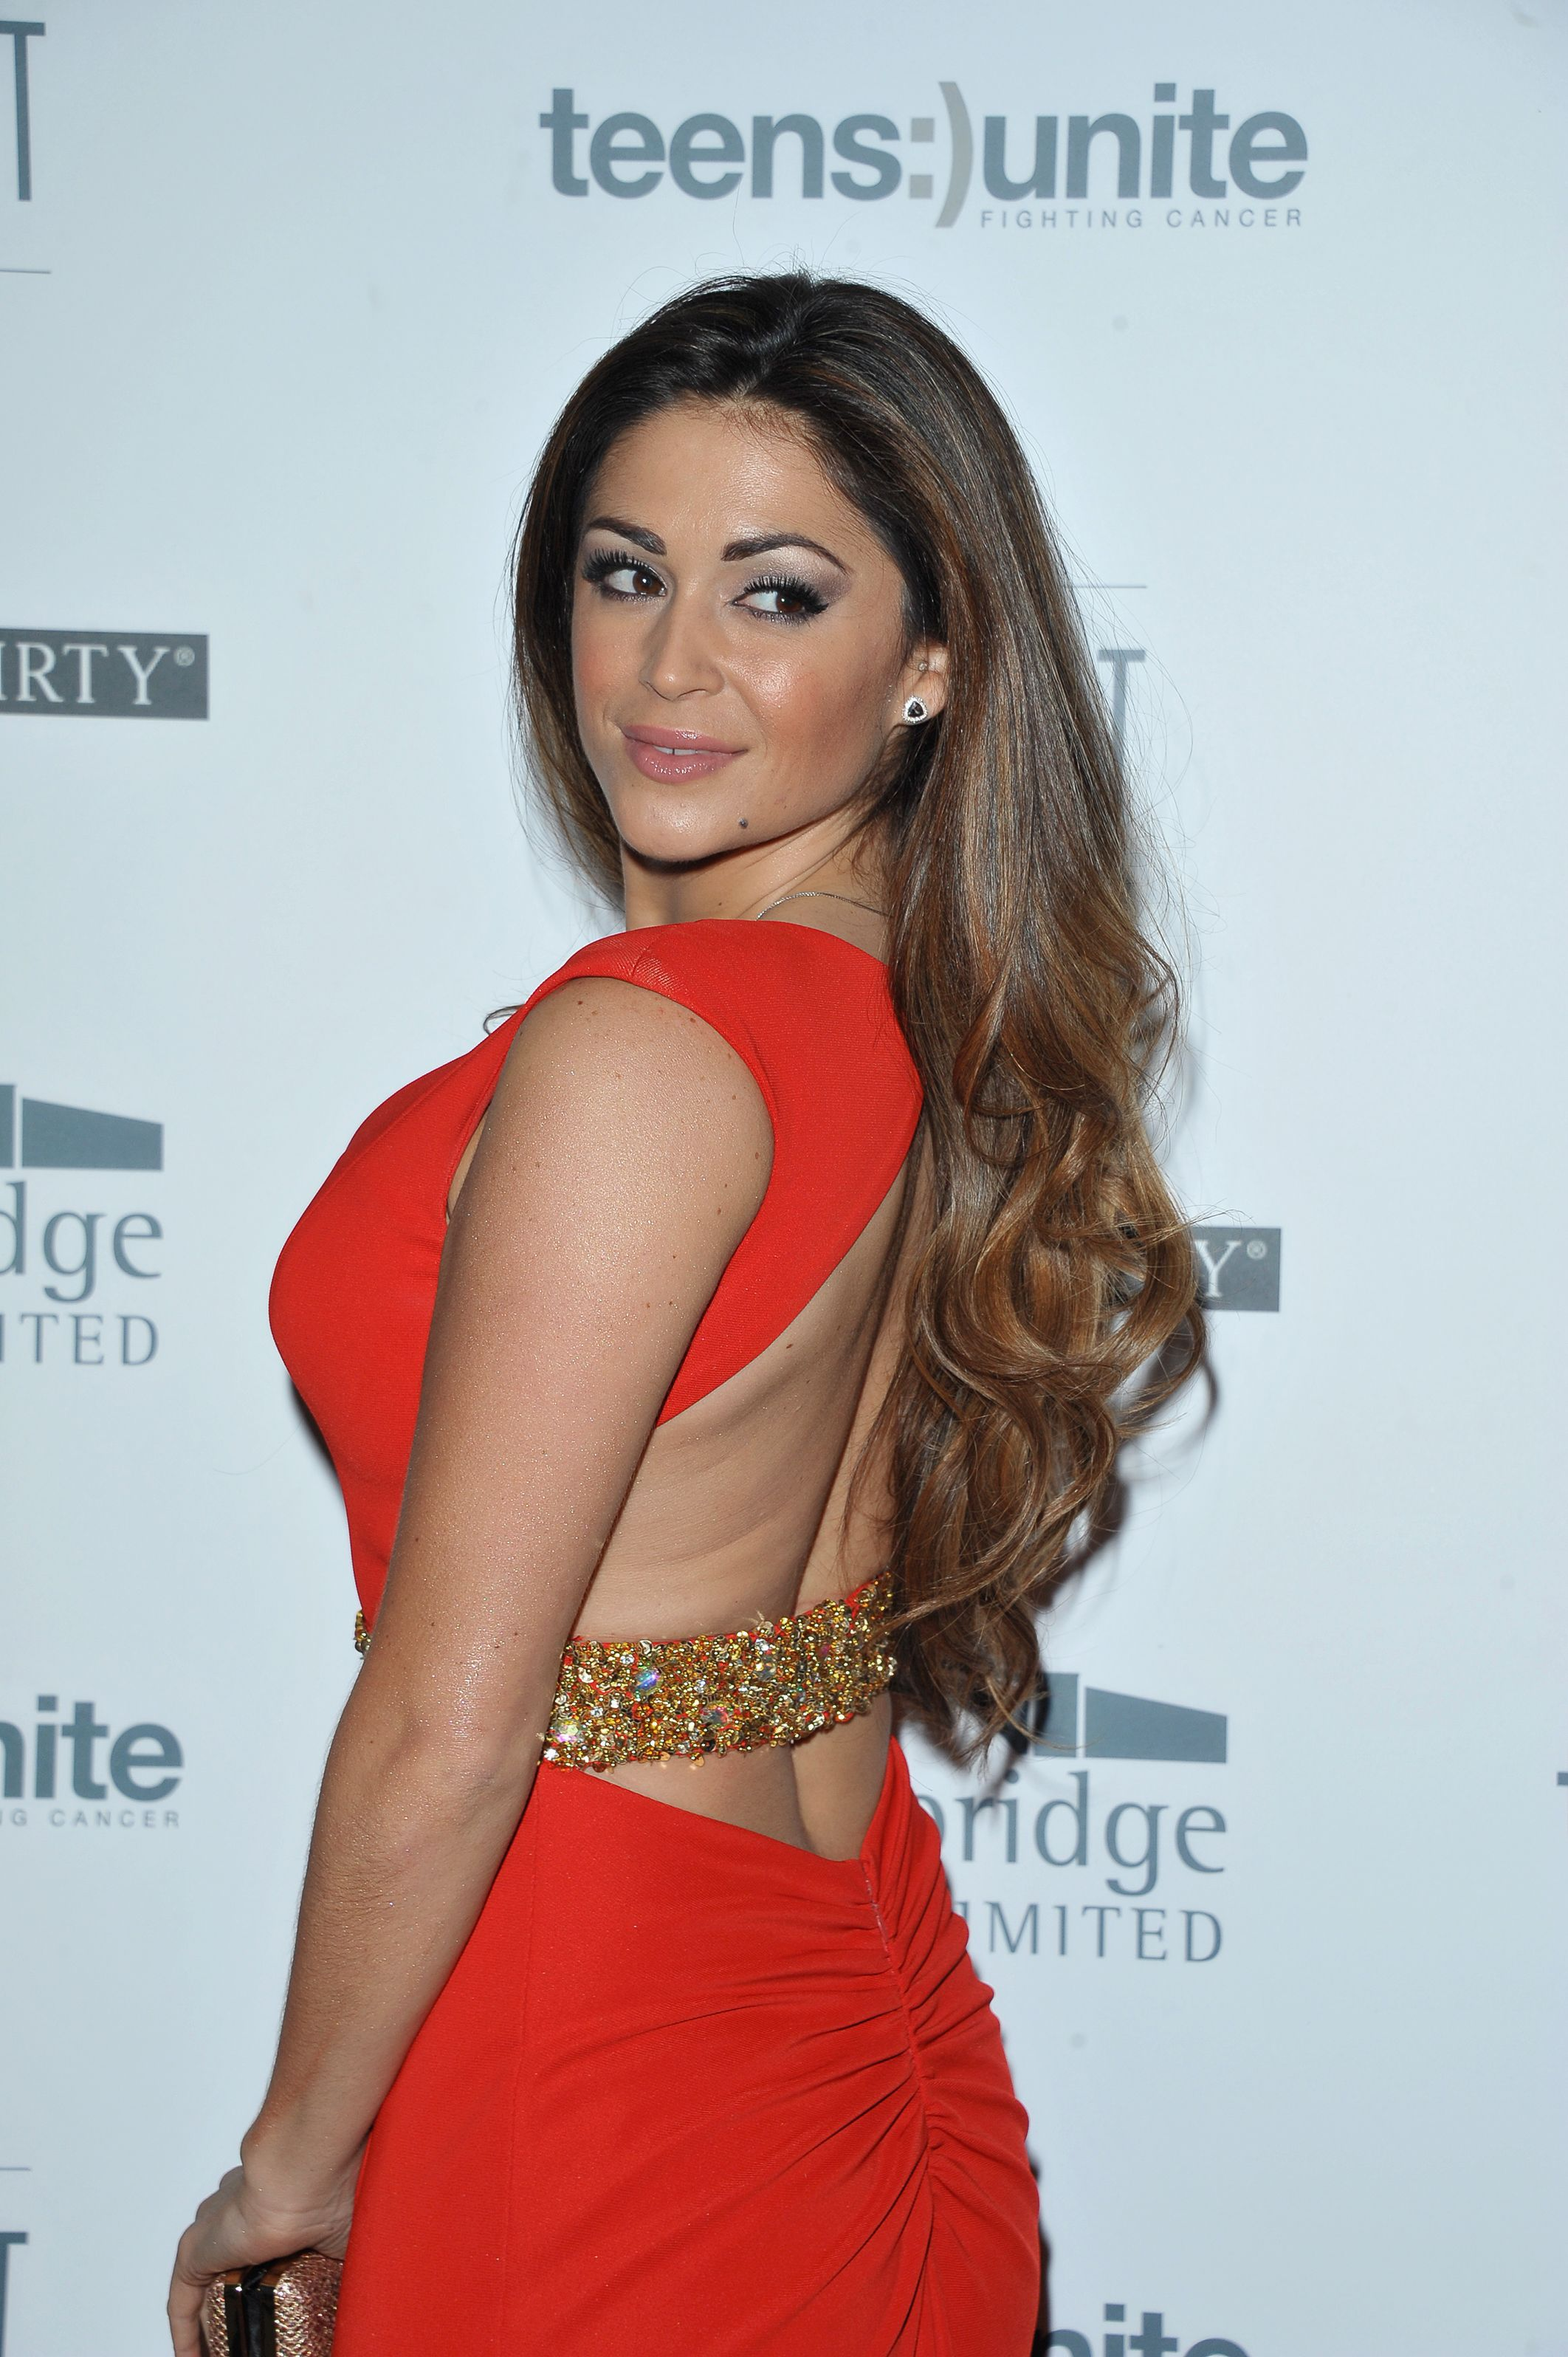 Casey Batchelor 3 500 HQ-UHQ Pics